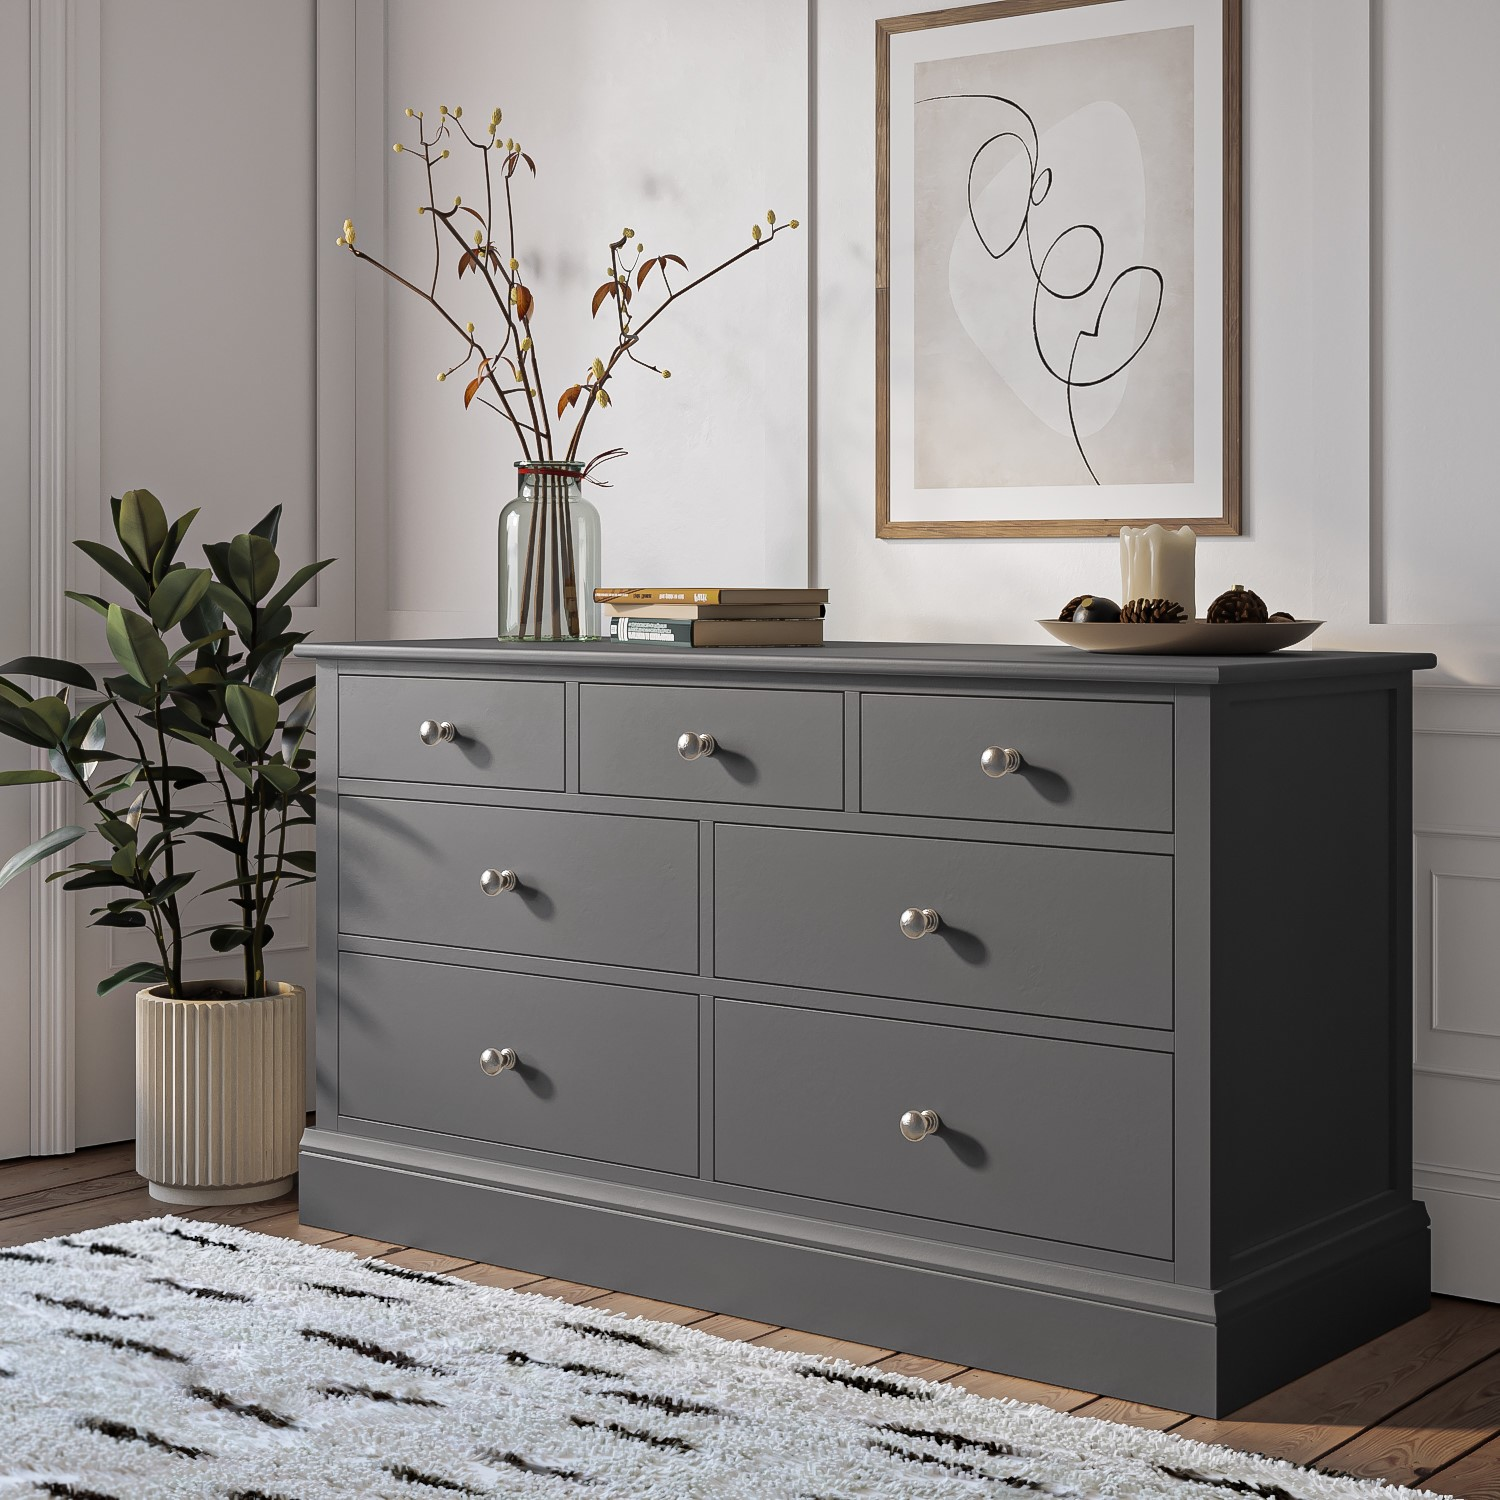 Cabinet Bedroom Furniture: Grey Chest Of Drawers 4+3 Drawer Wide Storage Cabinet